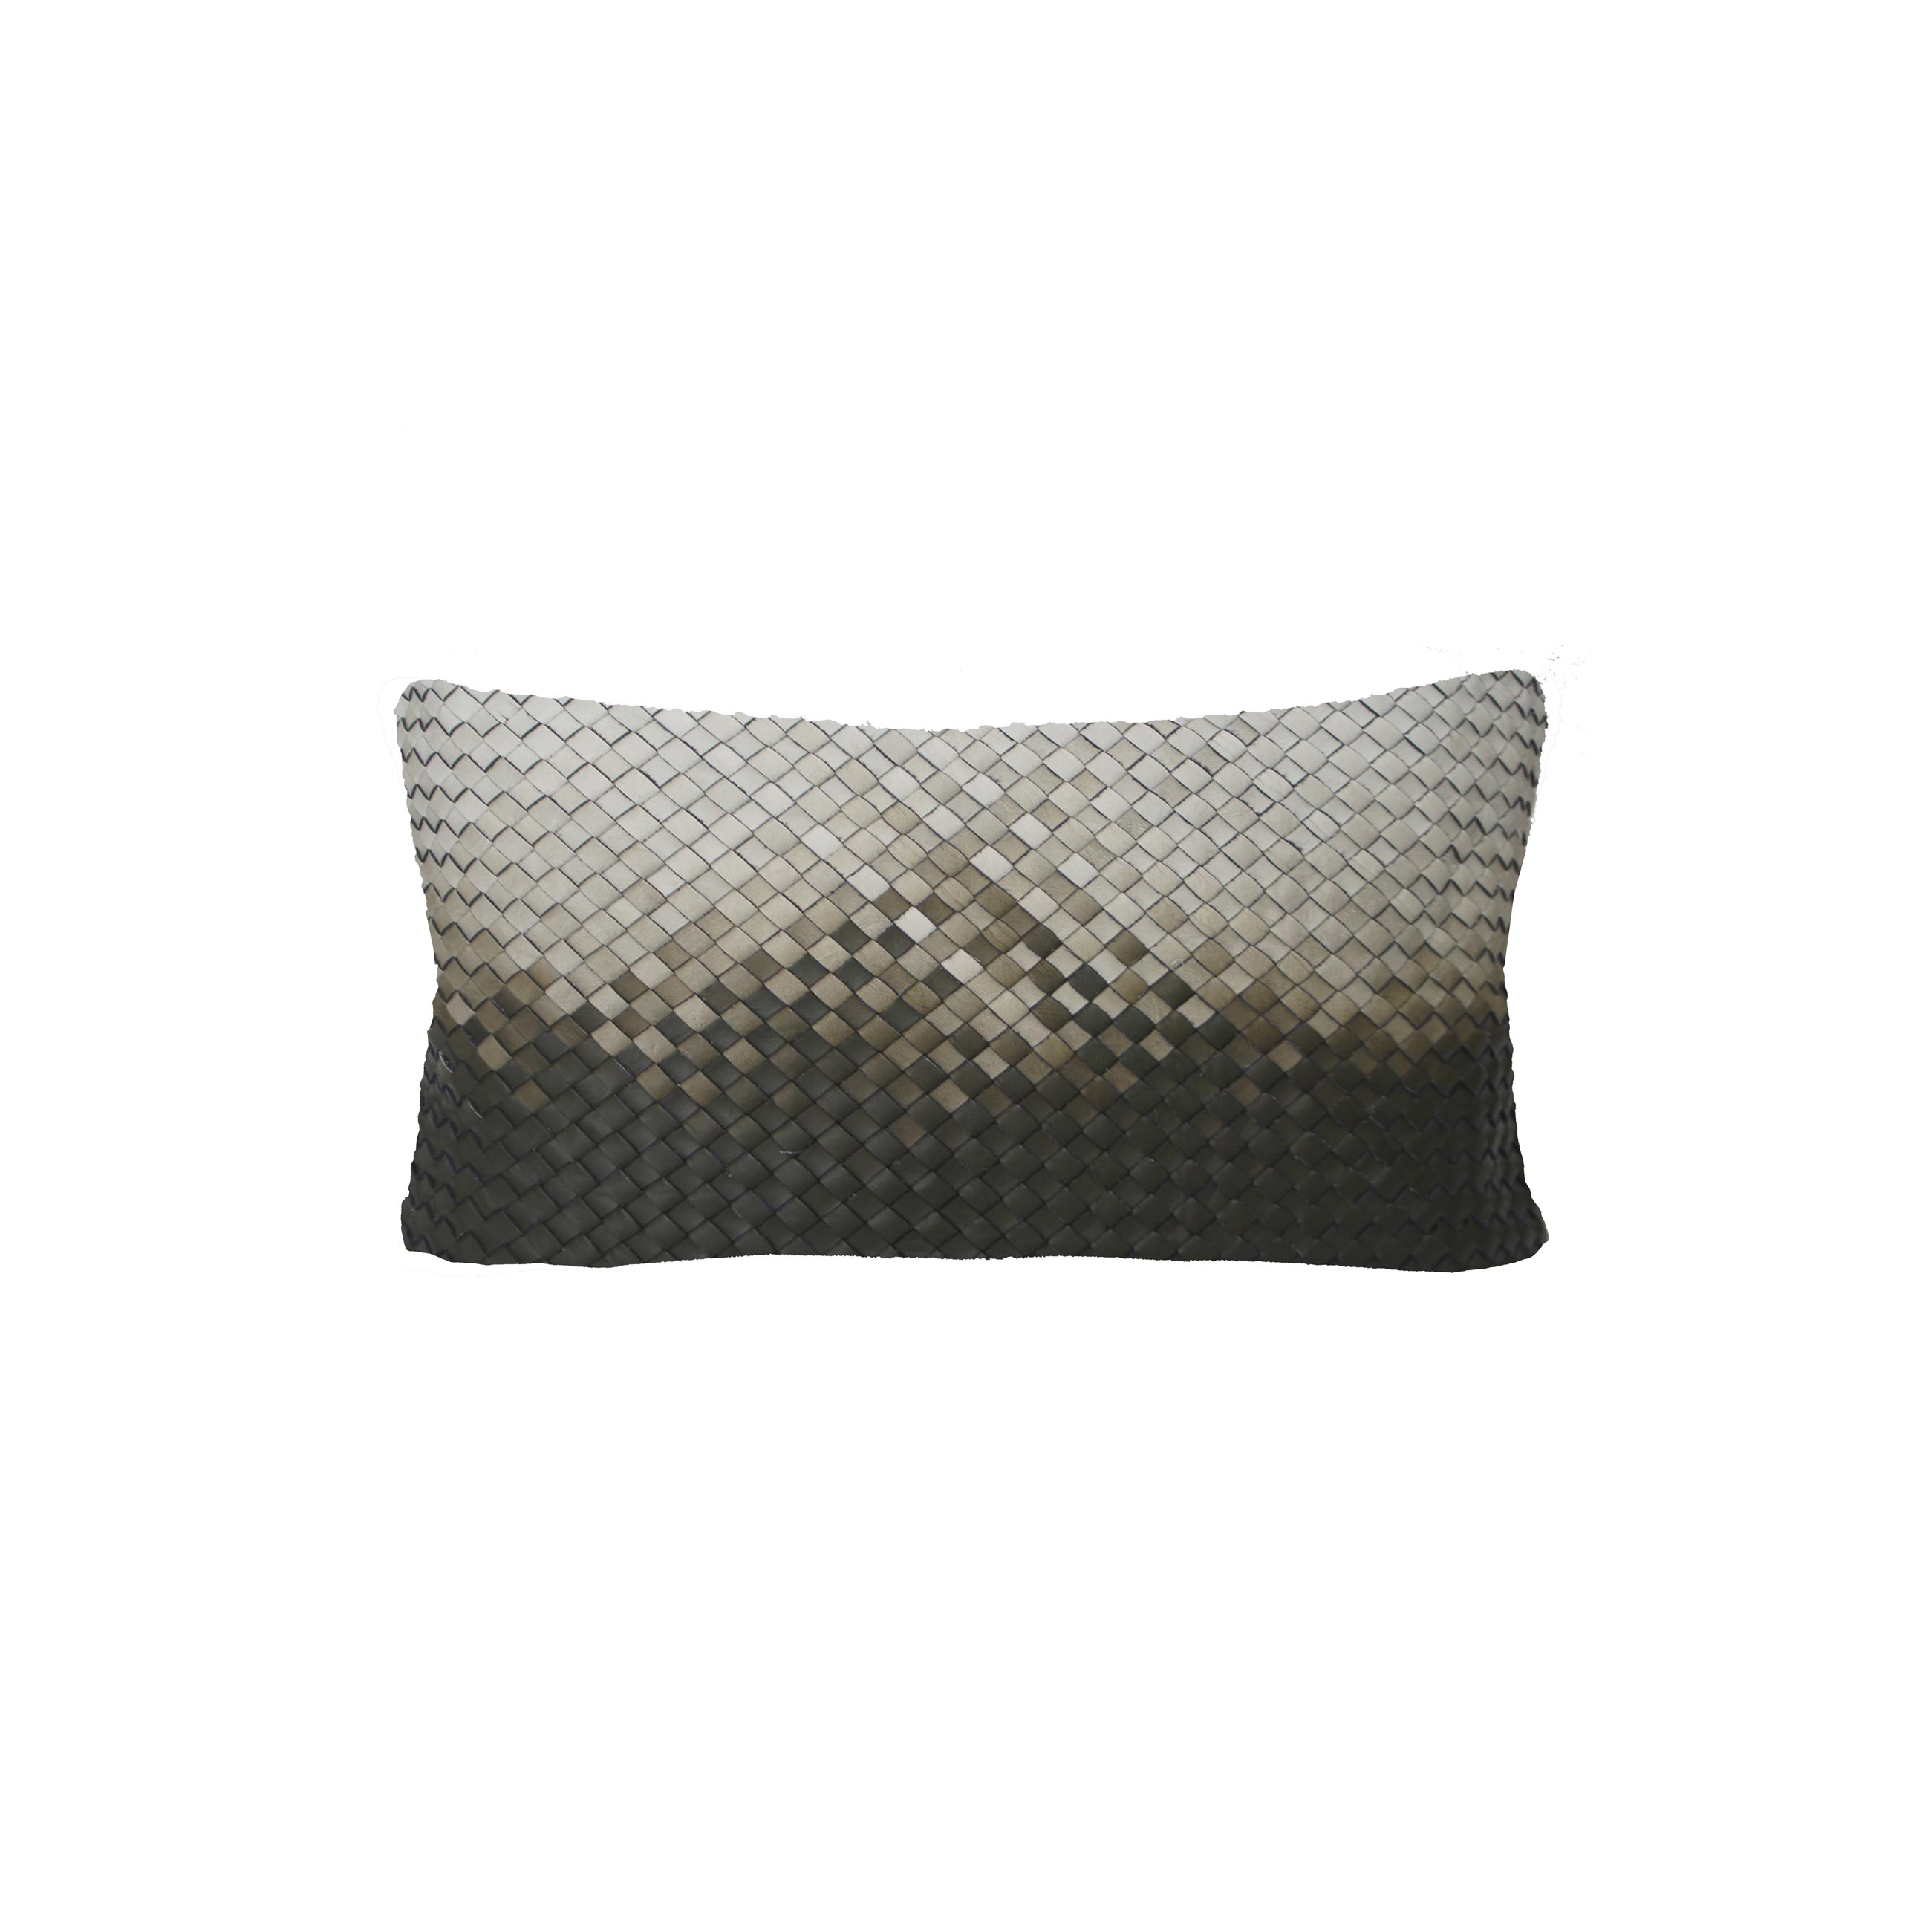 Mosaico Degrade Woven Leather Cushion Small - <p>The Small Mosaico Degrade Woven Leather Cushion is designed to complement an ambient with a natural and sophisticated feeling. Our woven handmade leather cushions are specially manufactured in Brazil using an exclusive treated leather that brings the soft feel touch to every single piece. Cushion pads can be customised in a range of ethically sourced feathers, eco-friendly wool and allergy-friendly fibres. Our fillings are sourced for their superior quality and properties to make only the finest quality cushion pads.</p> <p>Elisa Atheniense Home Cushions are sold in pairs only, all cushions are available in two sizes<br />Bespoke sizes are also available under project request as well as colours.</p>  | Matter of Stuff